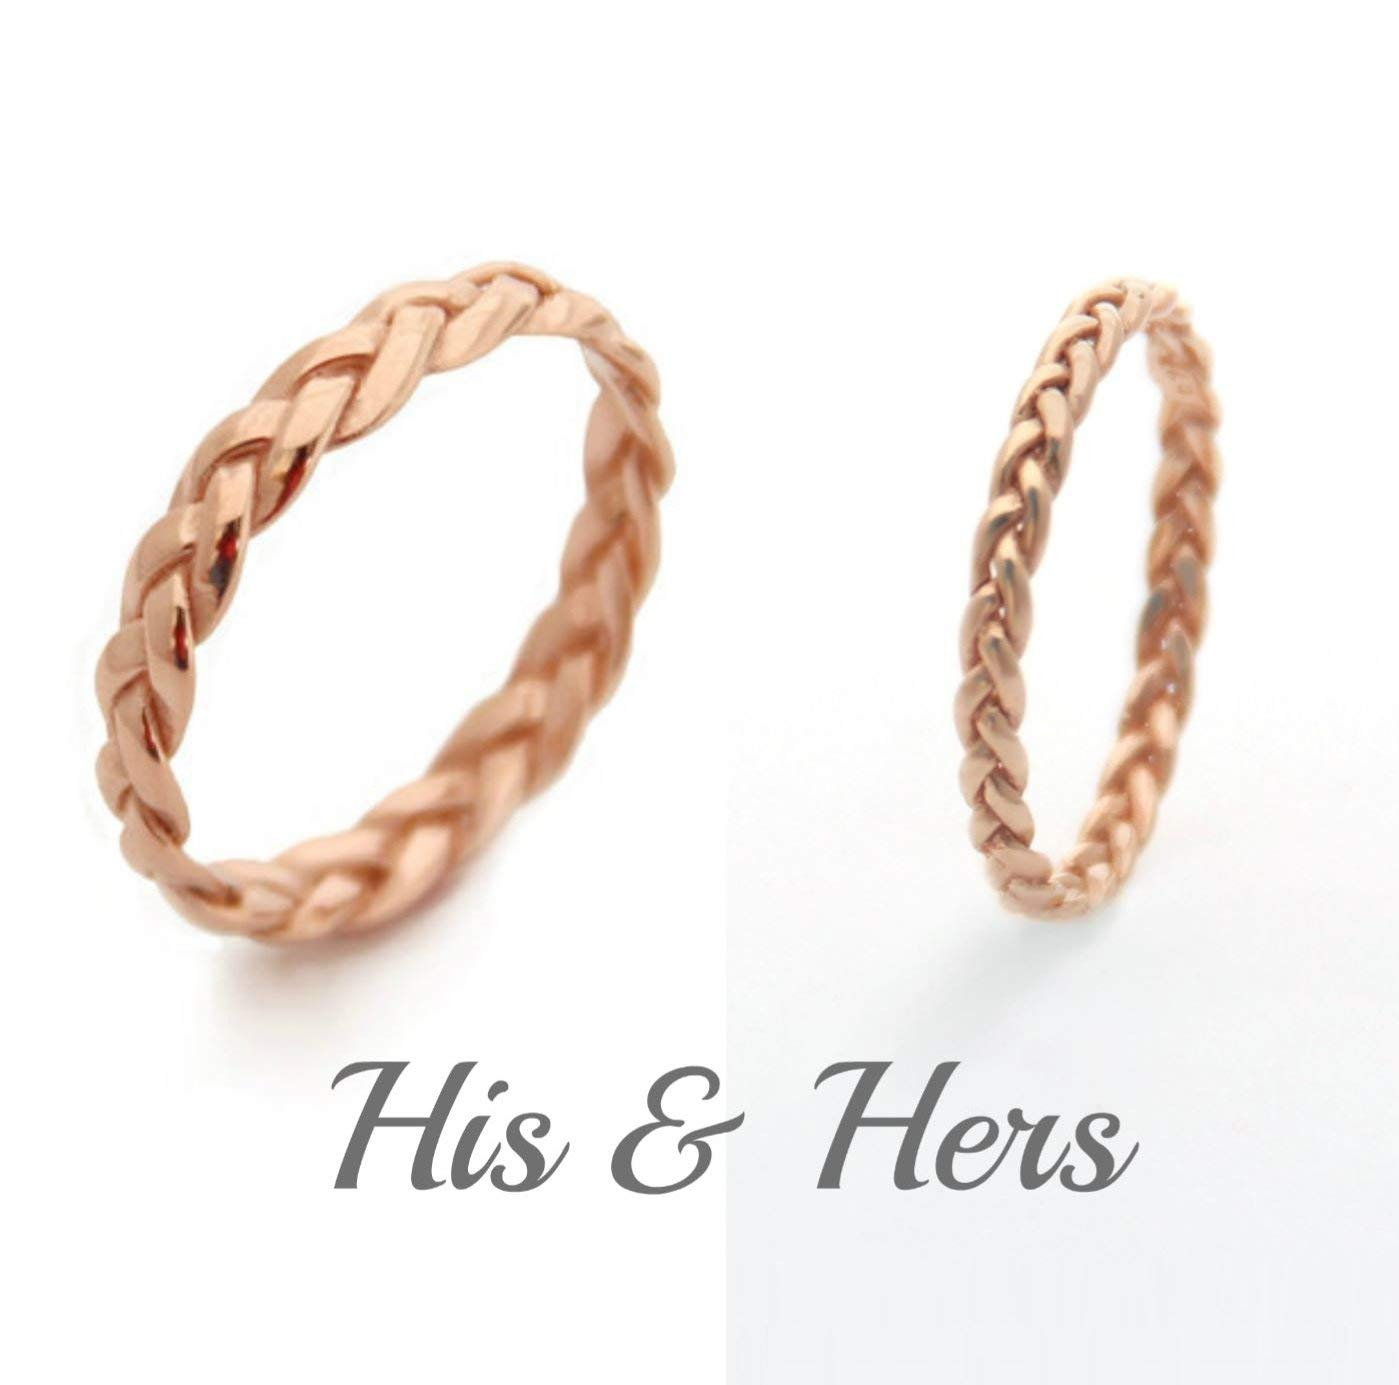 Handmade 14K Matching Rings for him and her Yellow, Rose or White Gold His and Hers Wedding Ring Set